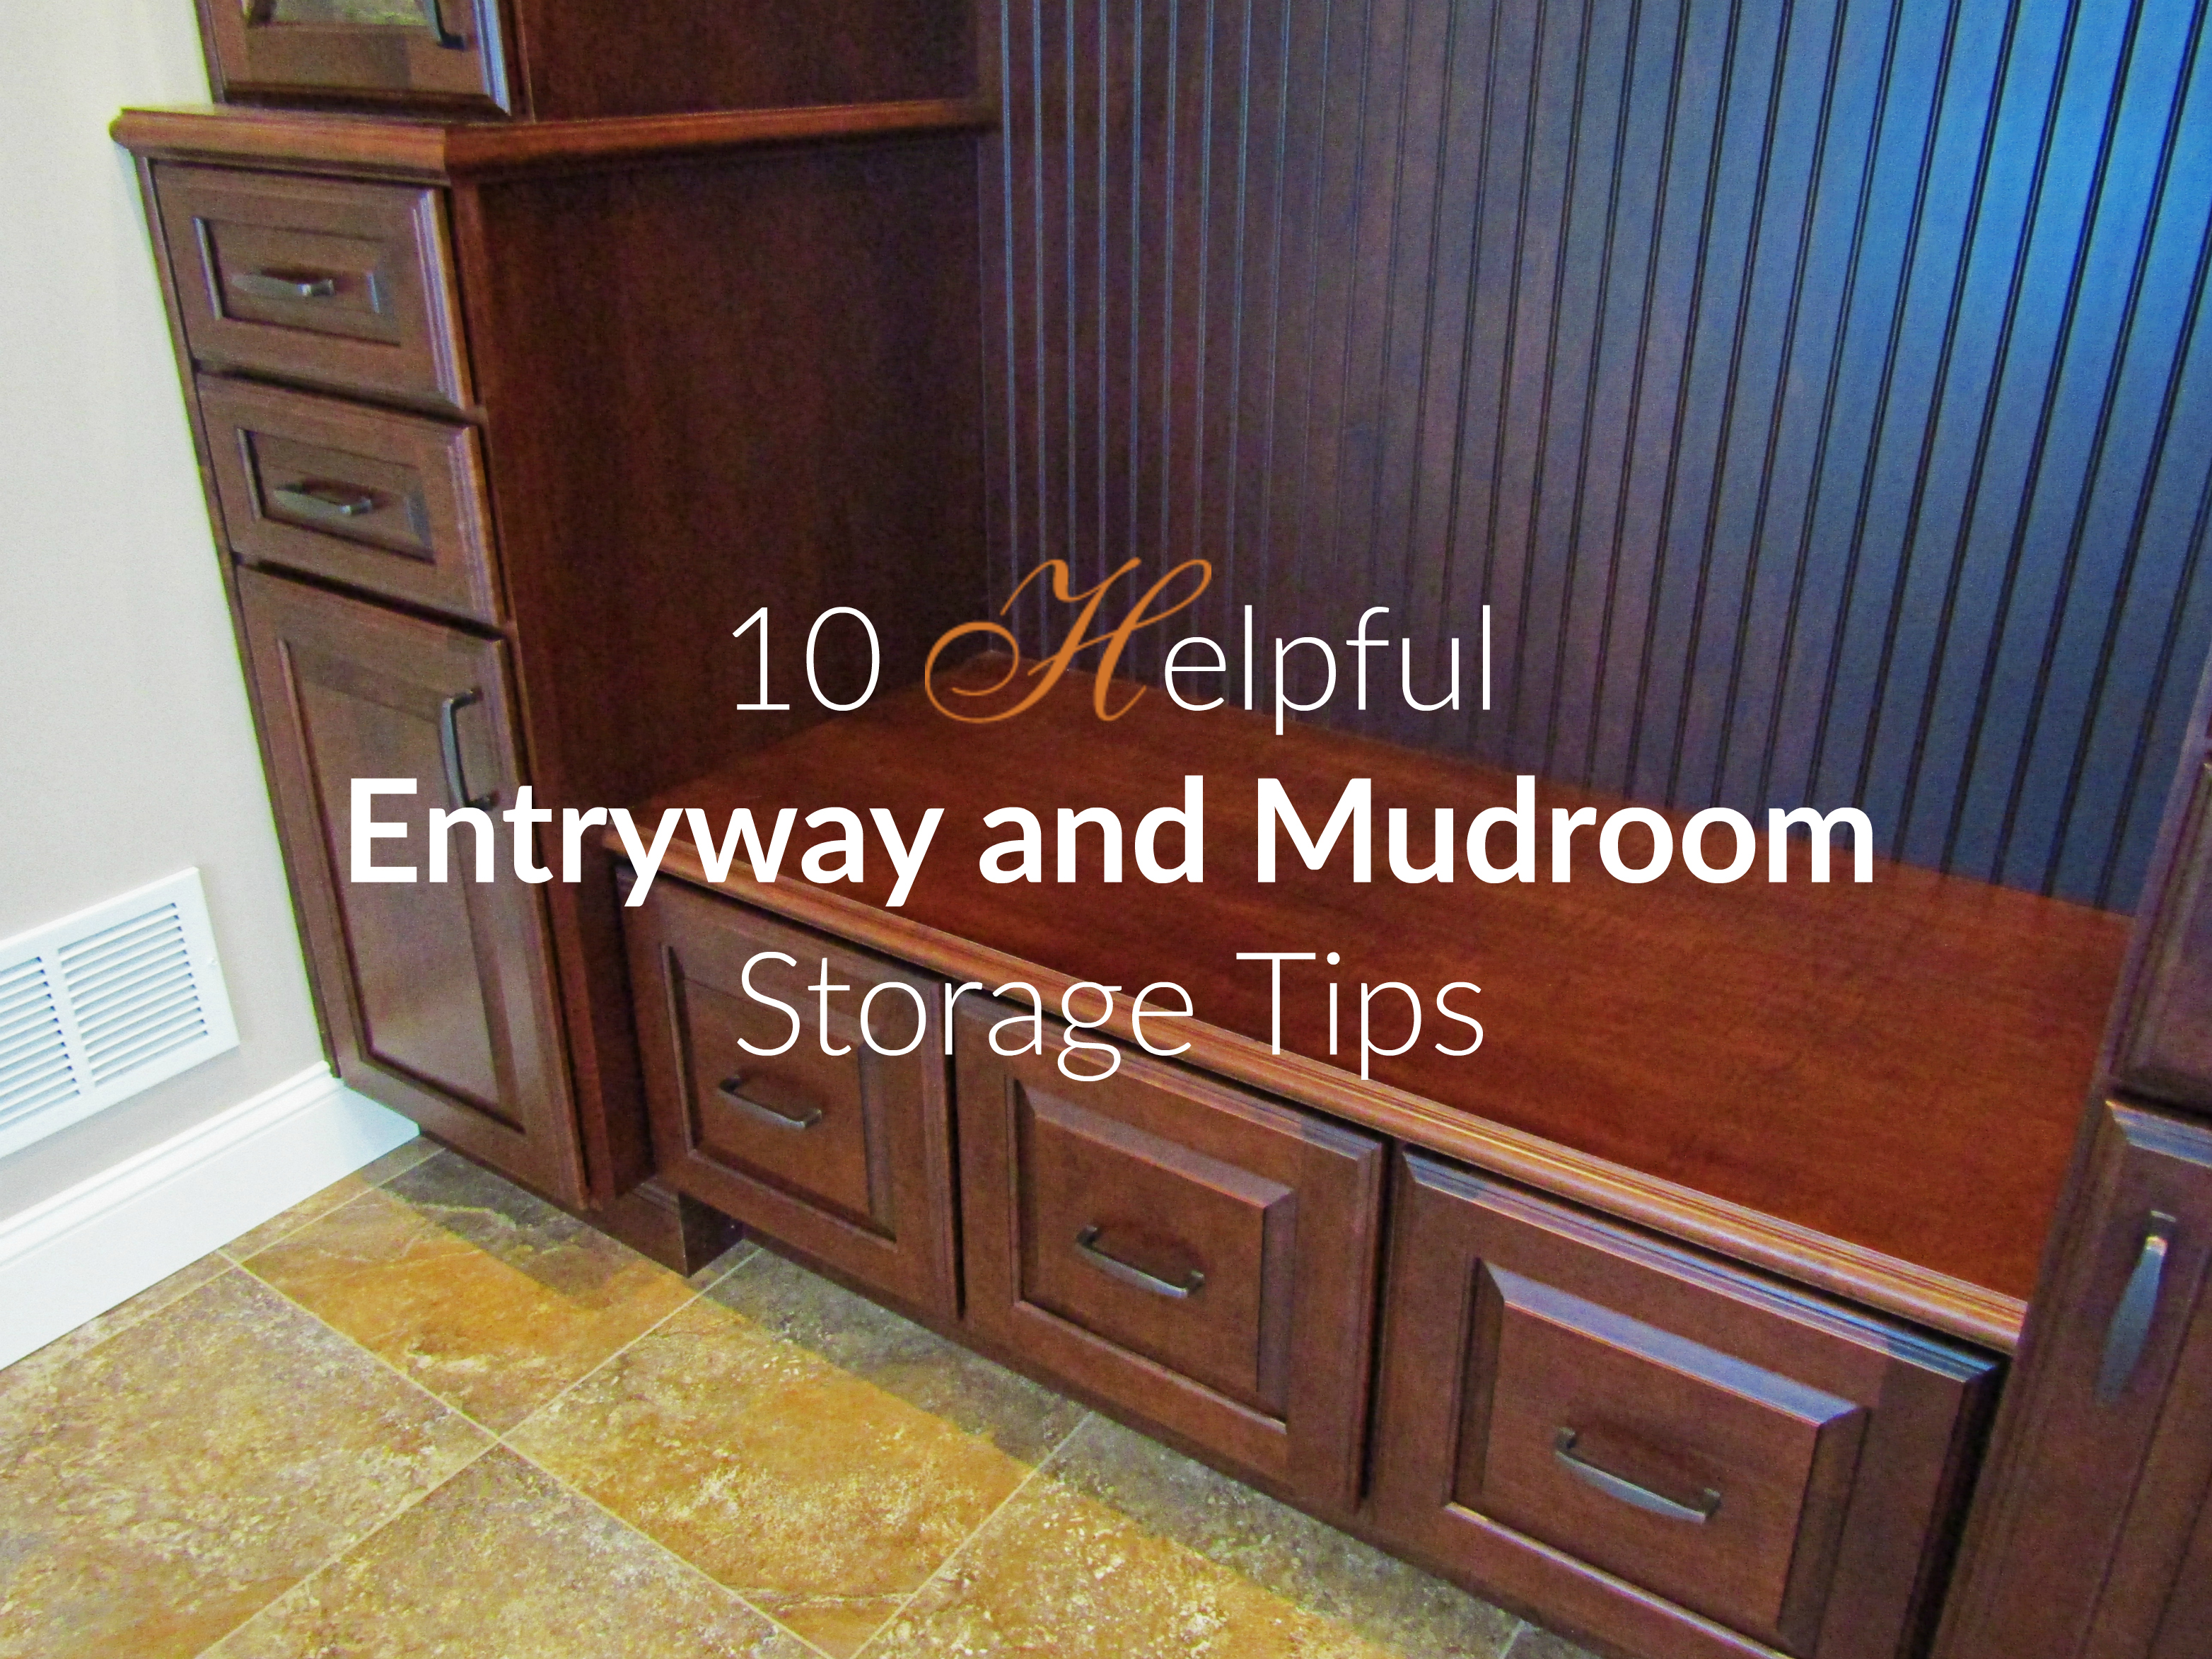 10 Helpful Entryway and Mudroom Tips